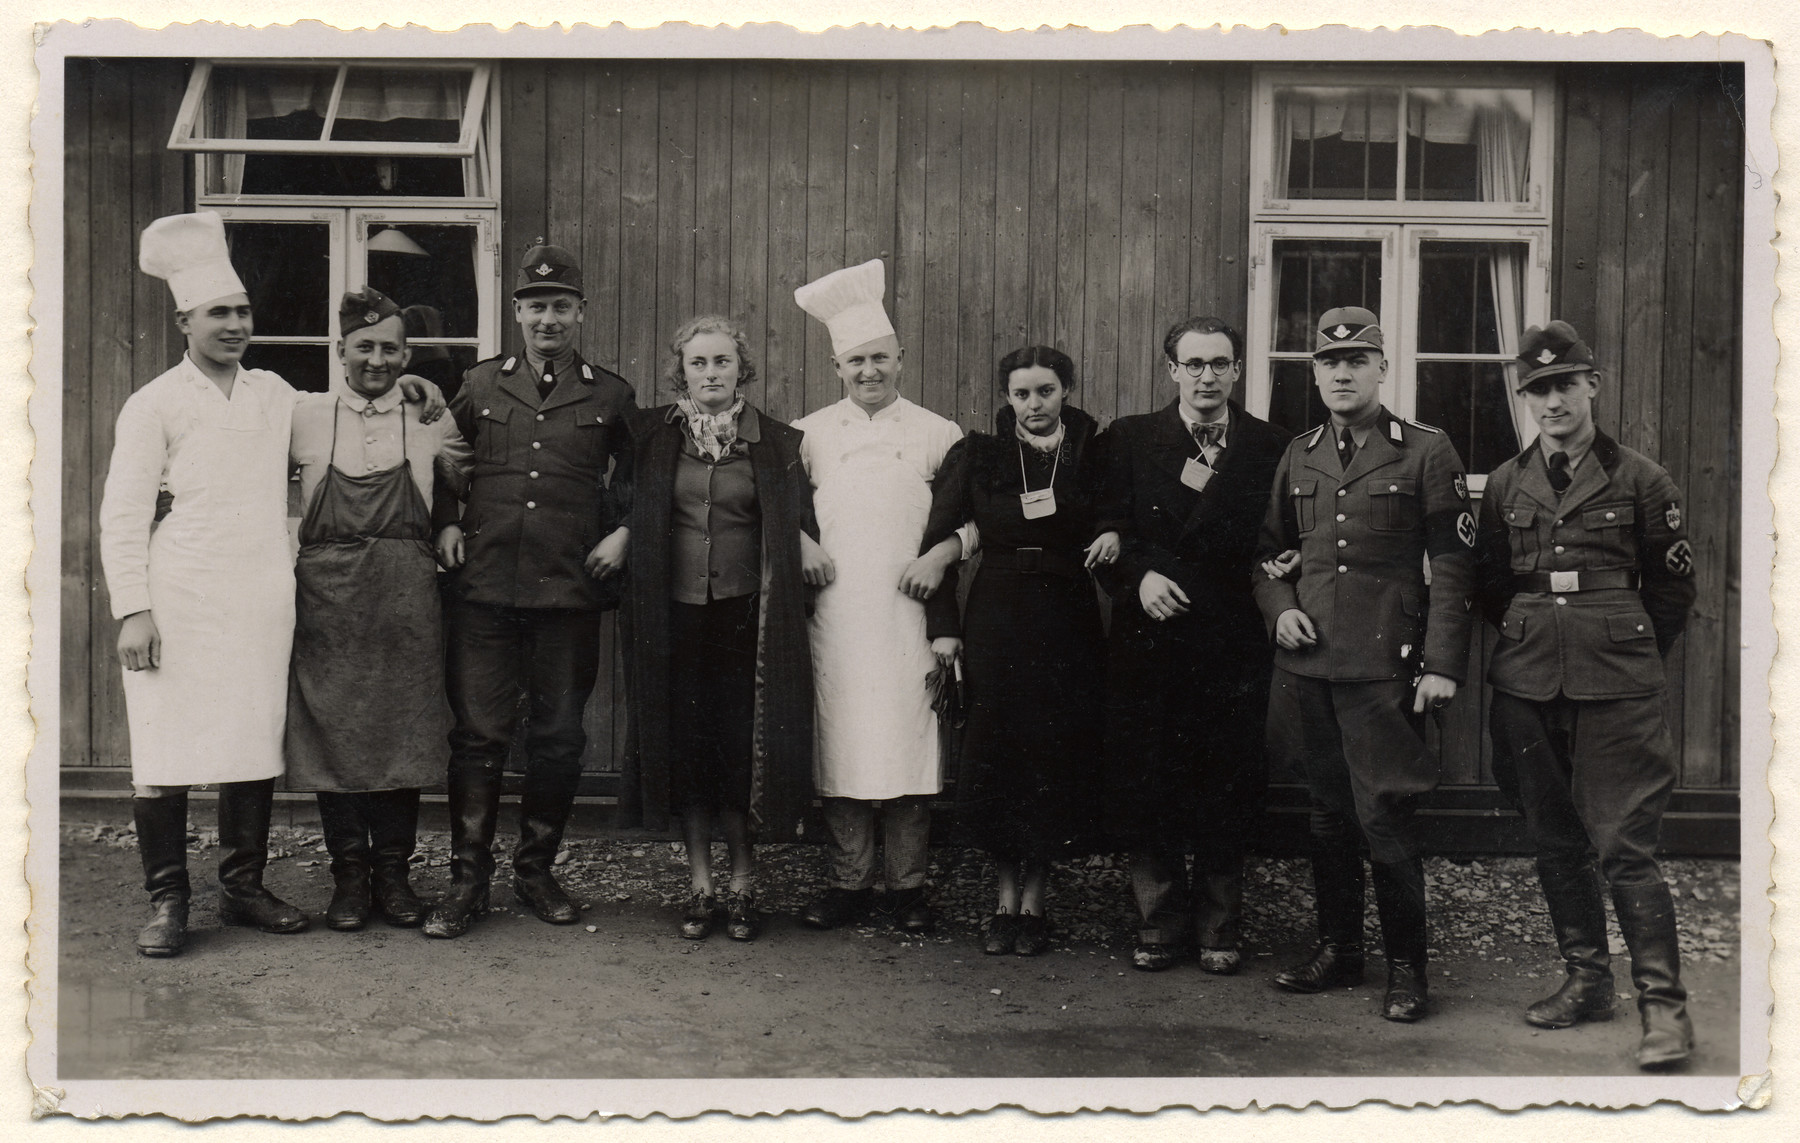 Chefs, women, and members of the RAD (Reich Labor Service) pose for a group photo.